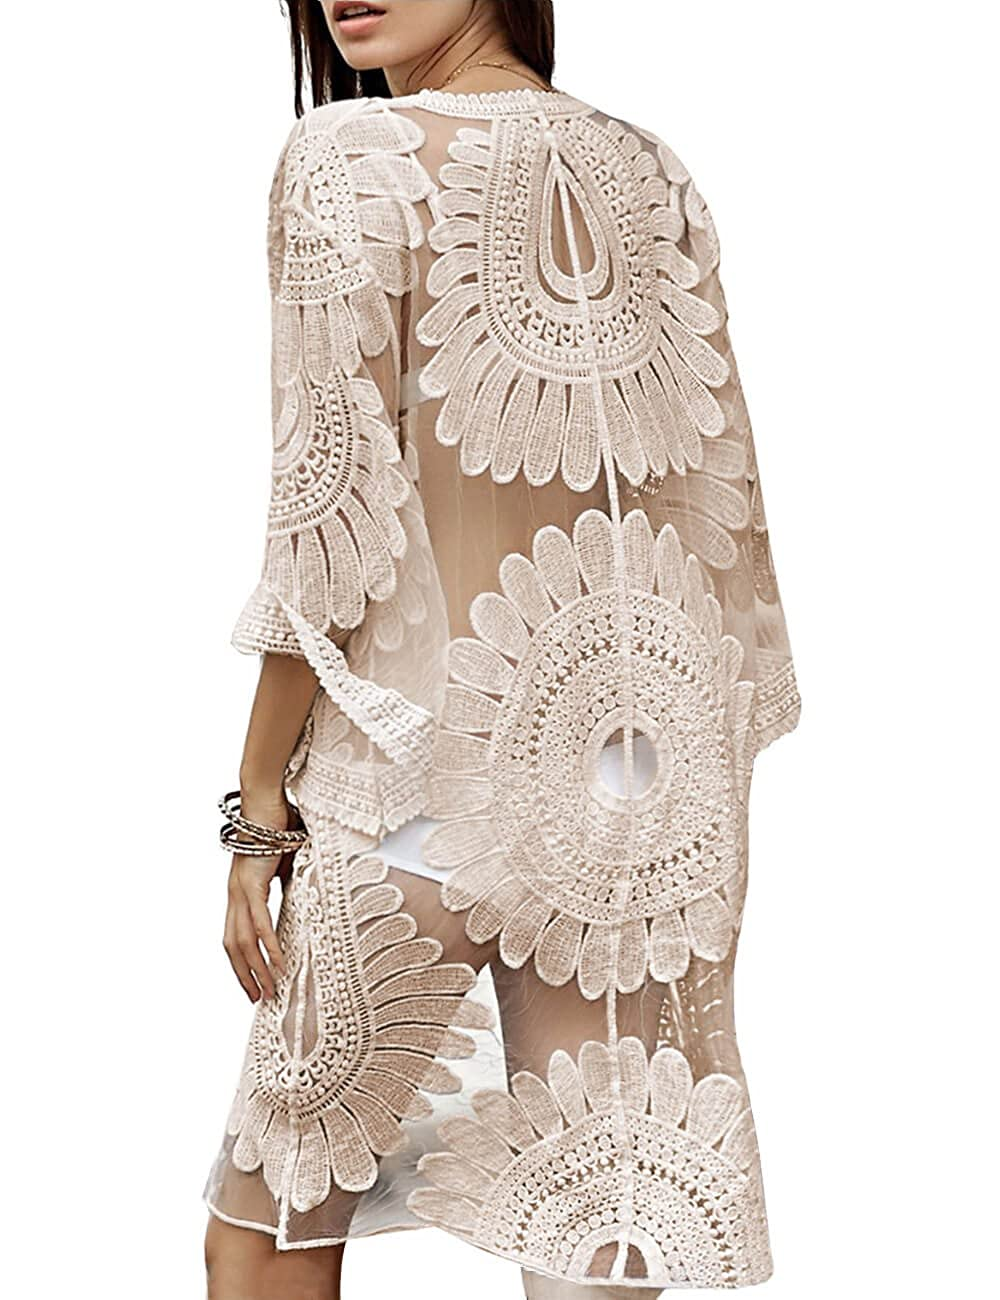 d22e1319e shermie Women's Floral Crochet Lace Beach Swimsuit Cover Ups Long Vintage  Kimono Cardigan (Beige) at Amazon Women's Clothing store: